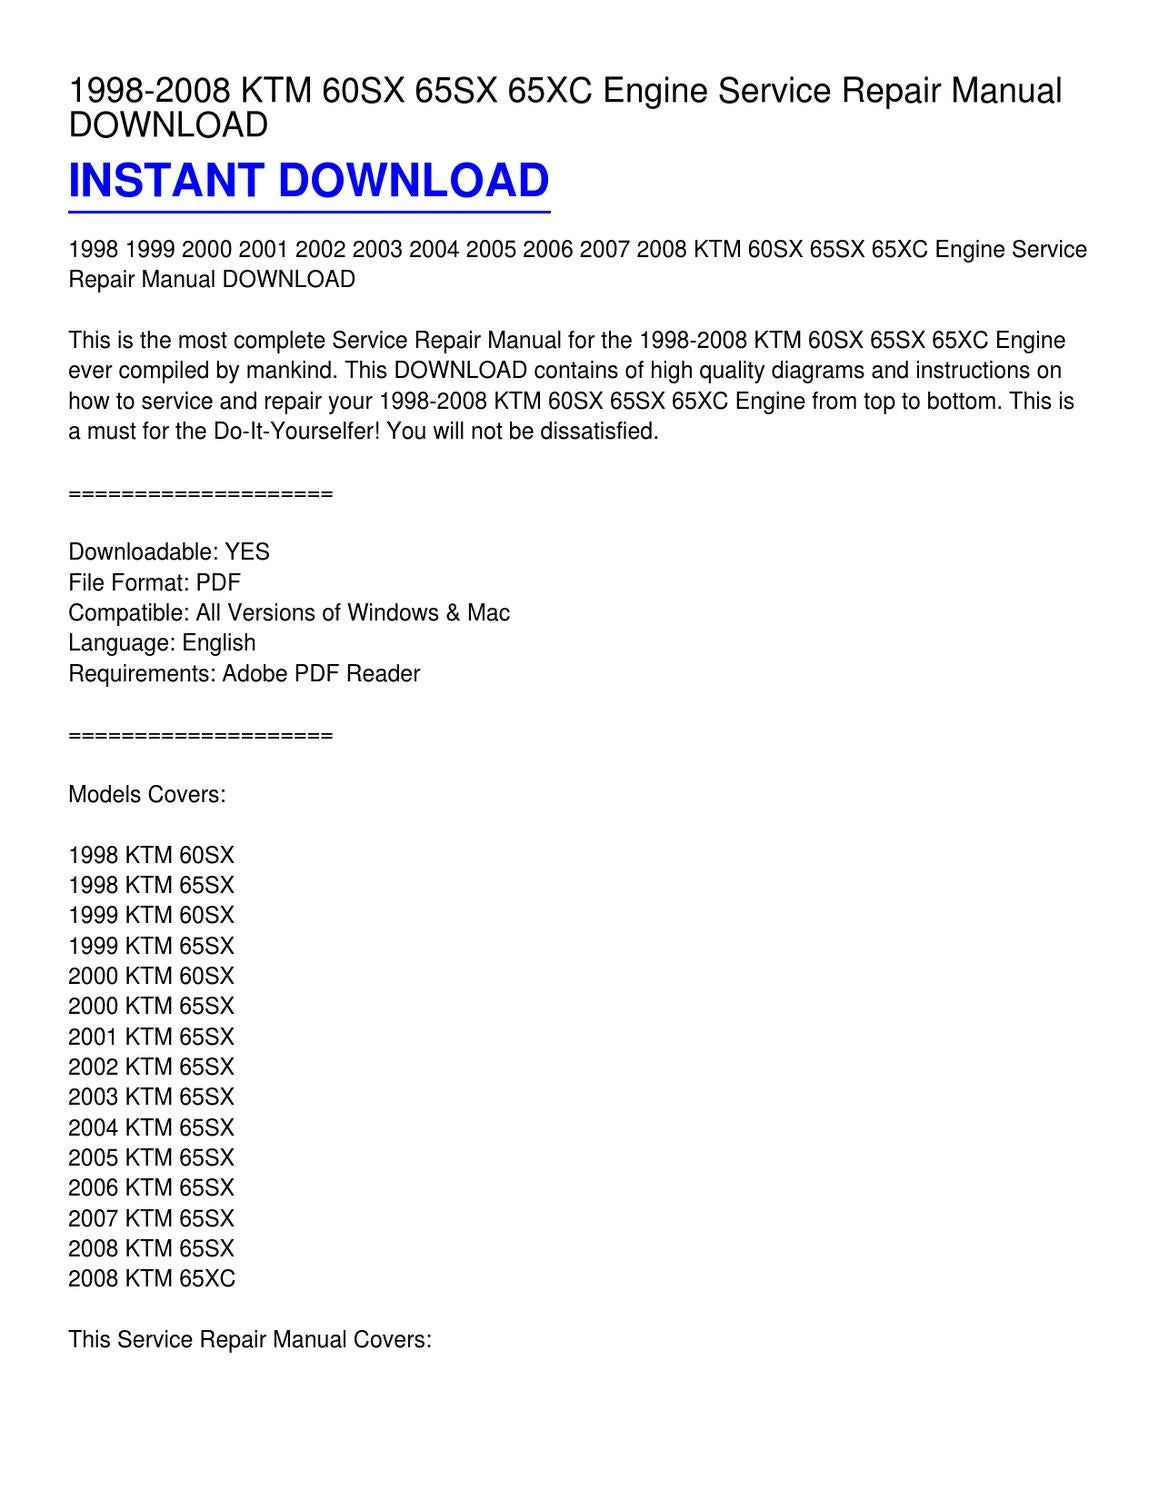 1998 Ktm Wiring Diagrams Explained 99 Diagram 2008 60sx 65sx 65xc Engine Service Repair Manual Download Mahindra Tractor Ignition